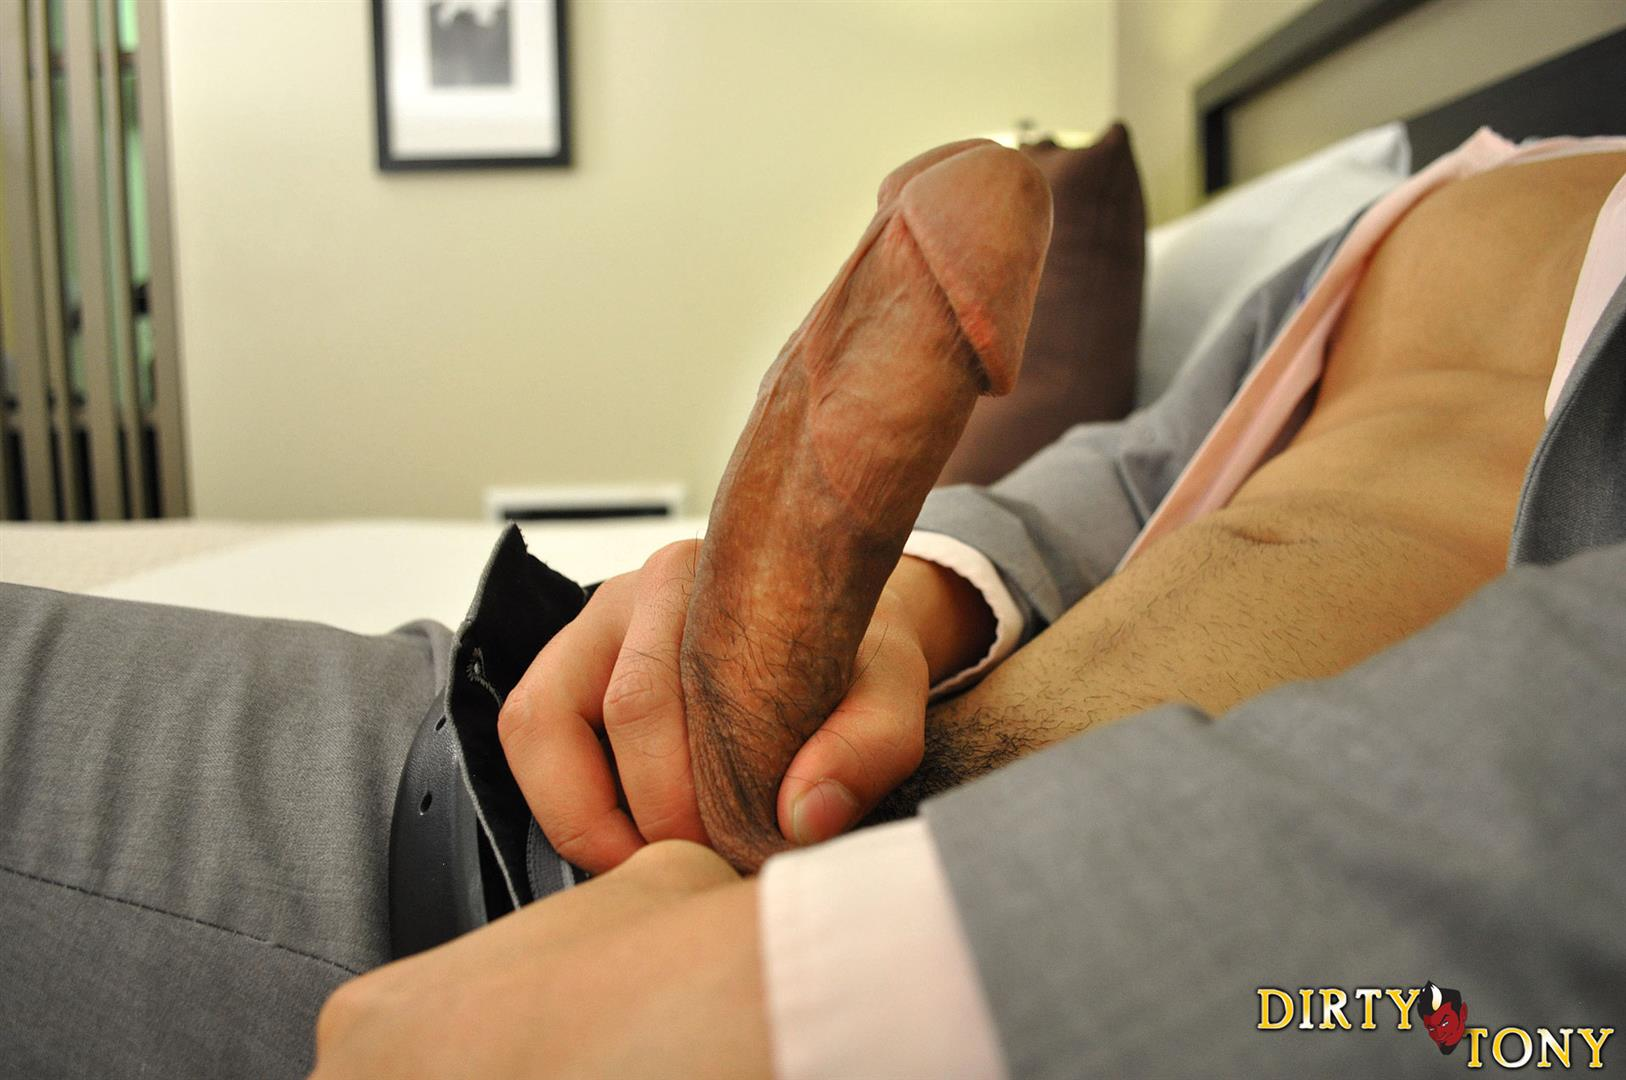 Dirty-Tony-Ryan-Allen-Asian-Guy-In-Suit-With-A-Big-Asian-Cock-Jerk-Off-Amateur-Gay-Porn-02 Amateur Asian Guy In Business Suit Stroking His Huge Asian Cock